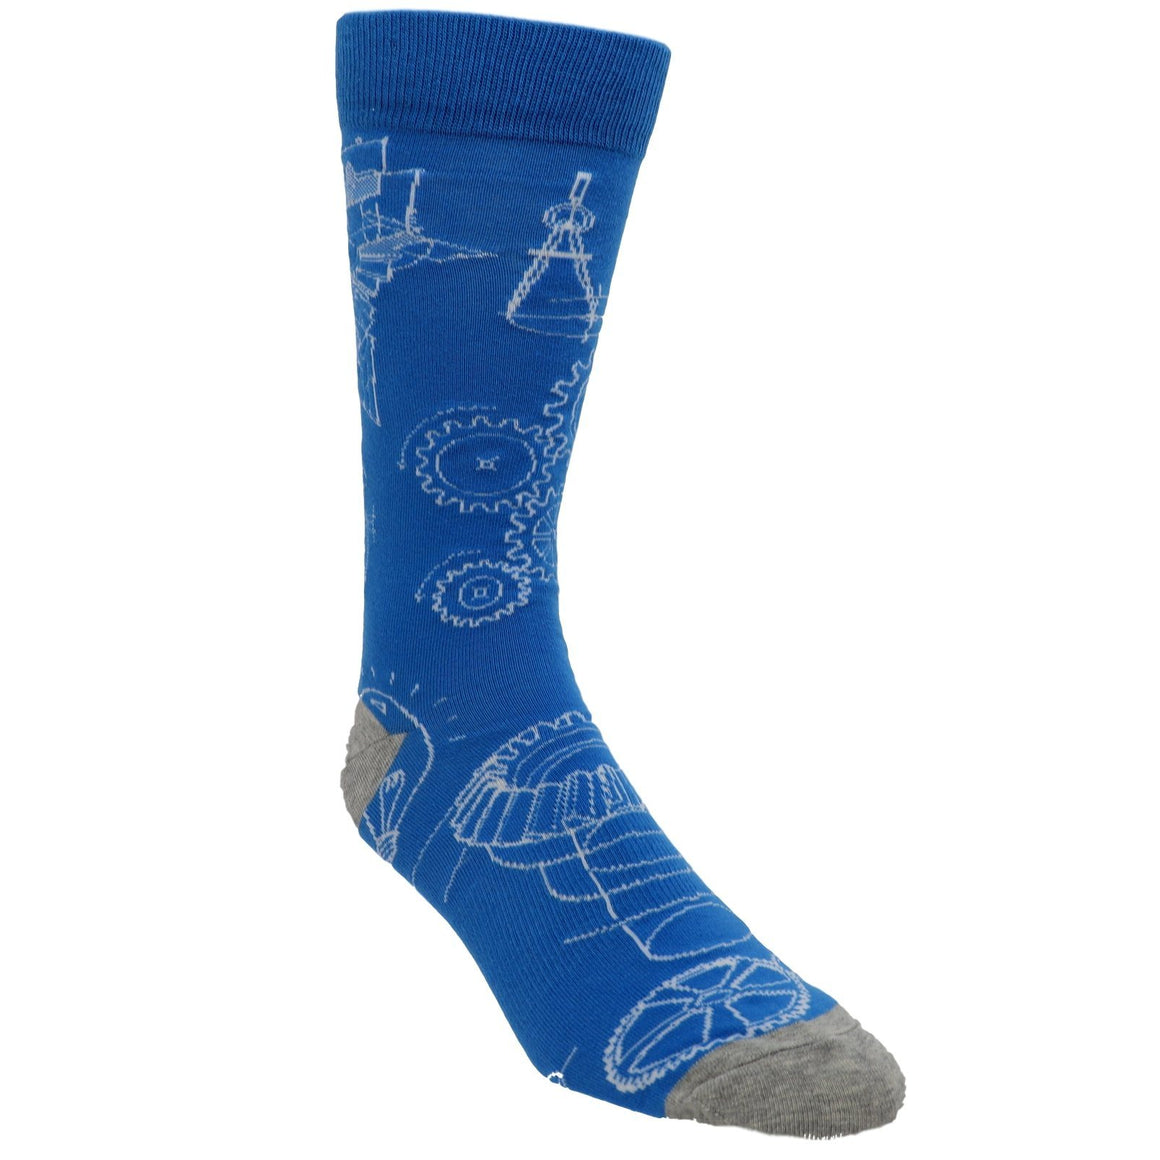 Engineer Men's Socks by K.Bell - The Sock Spot